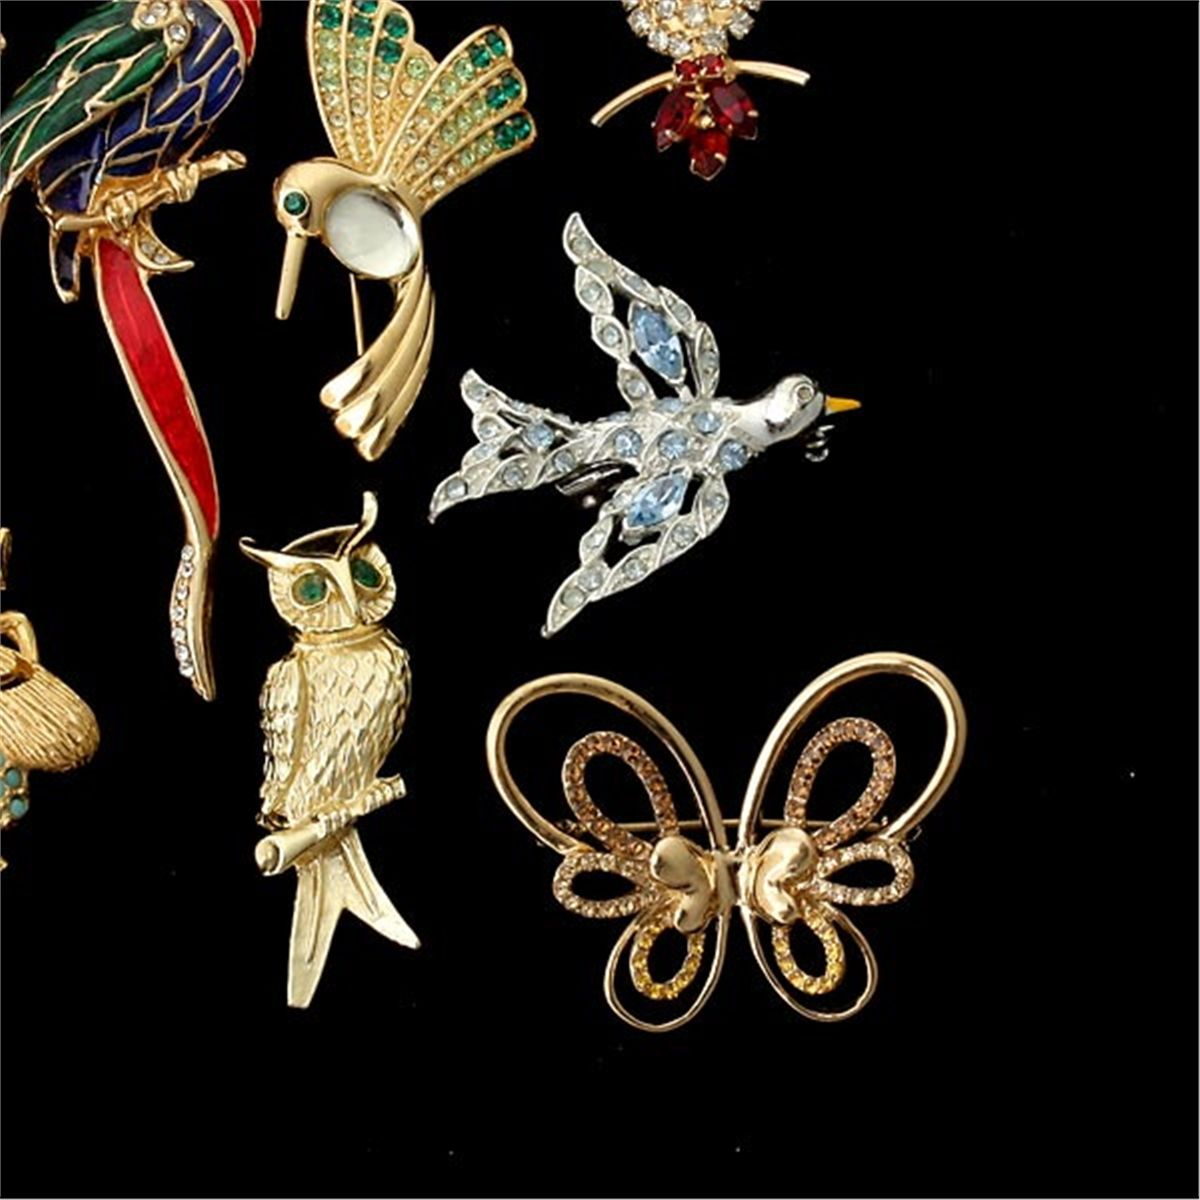 sc 1 st  iCollector.com & 17 ANIMAL MOTIF COSTUME JEWELRY BROOCHES.